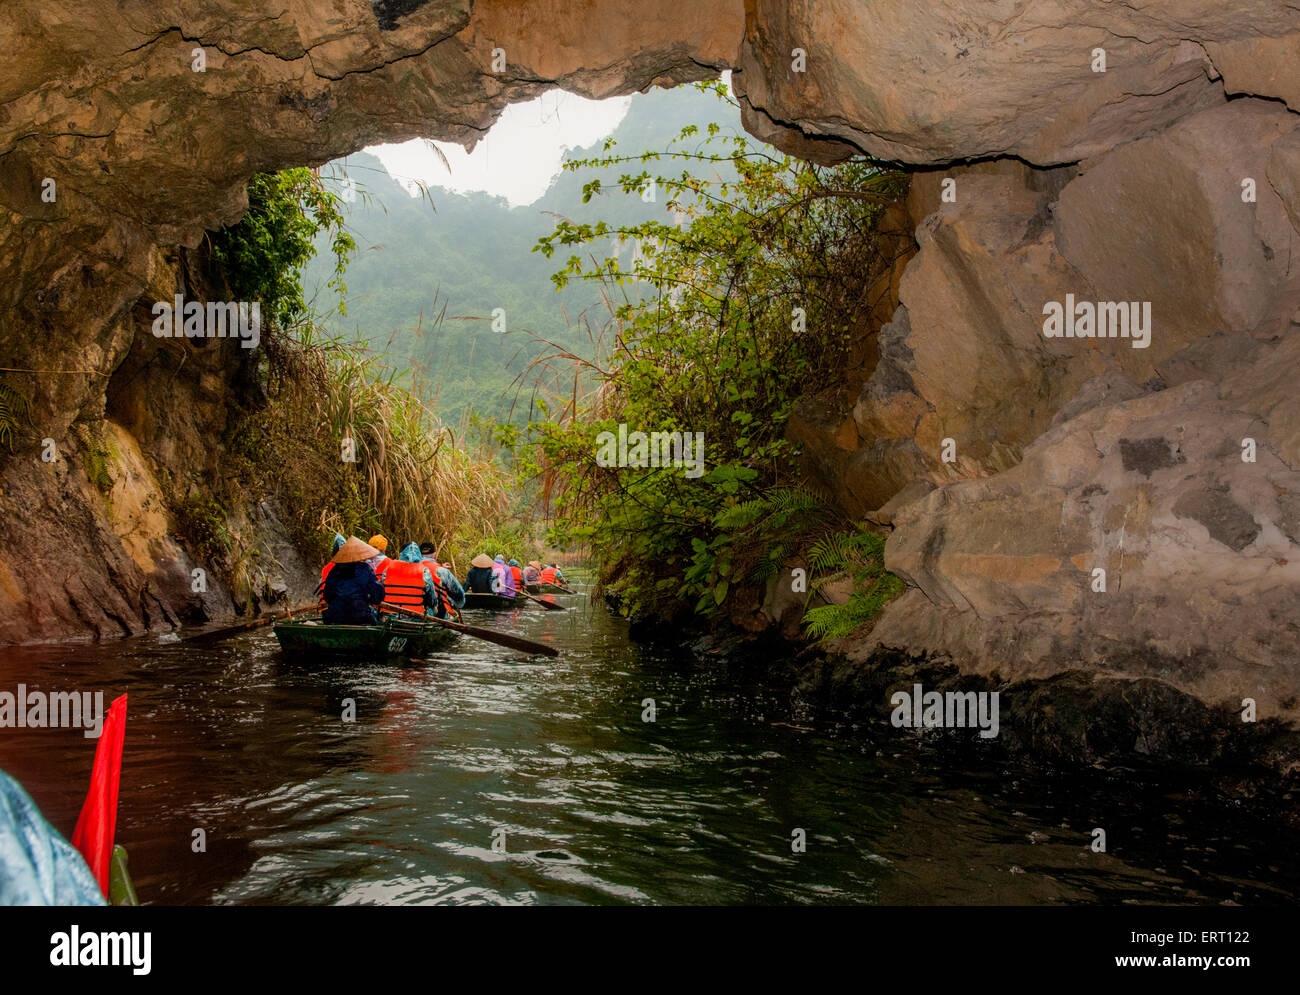 Traveling through Tam Coc caves on the Ngo Gong River in Ninh Binh, Vietnam - Stock Image